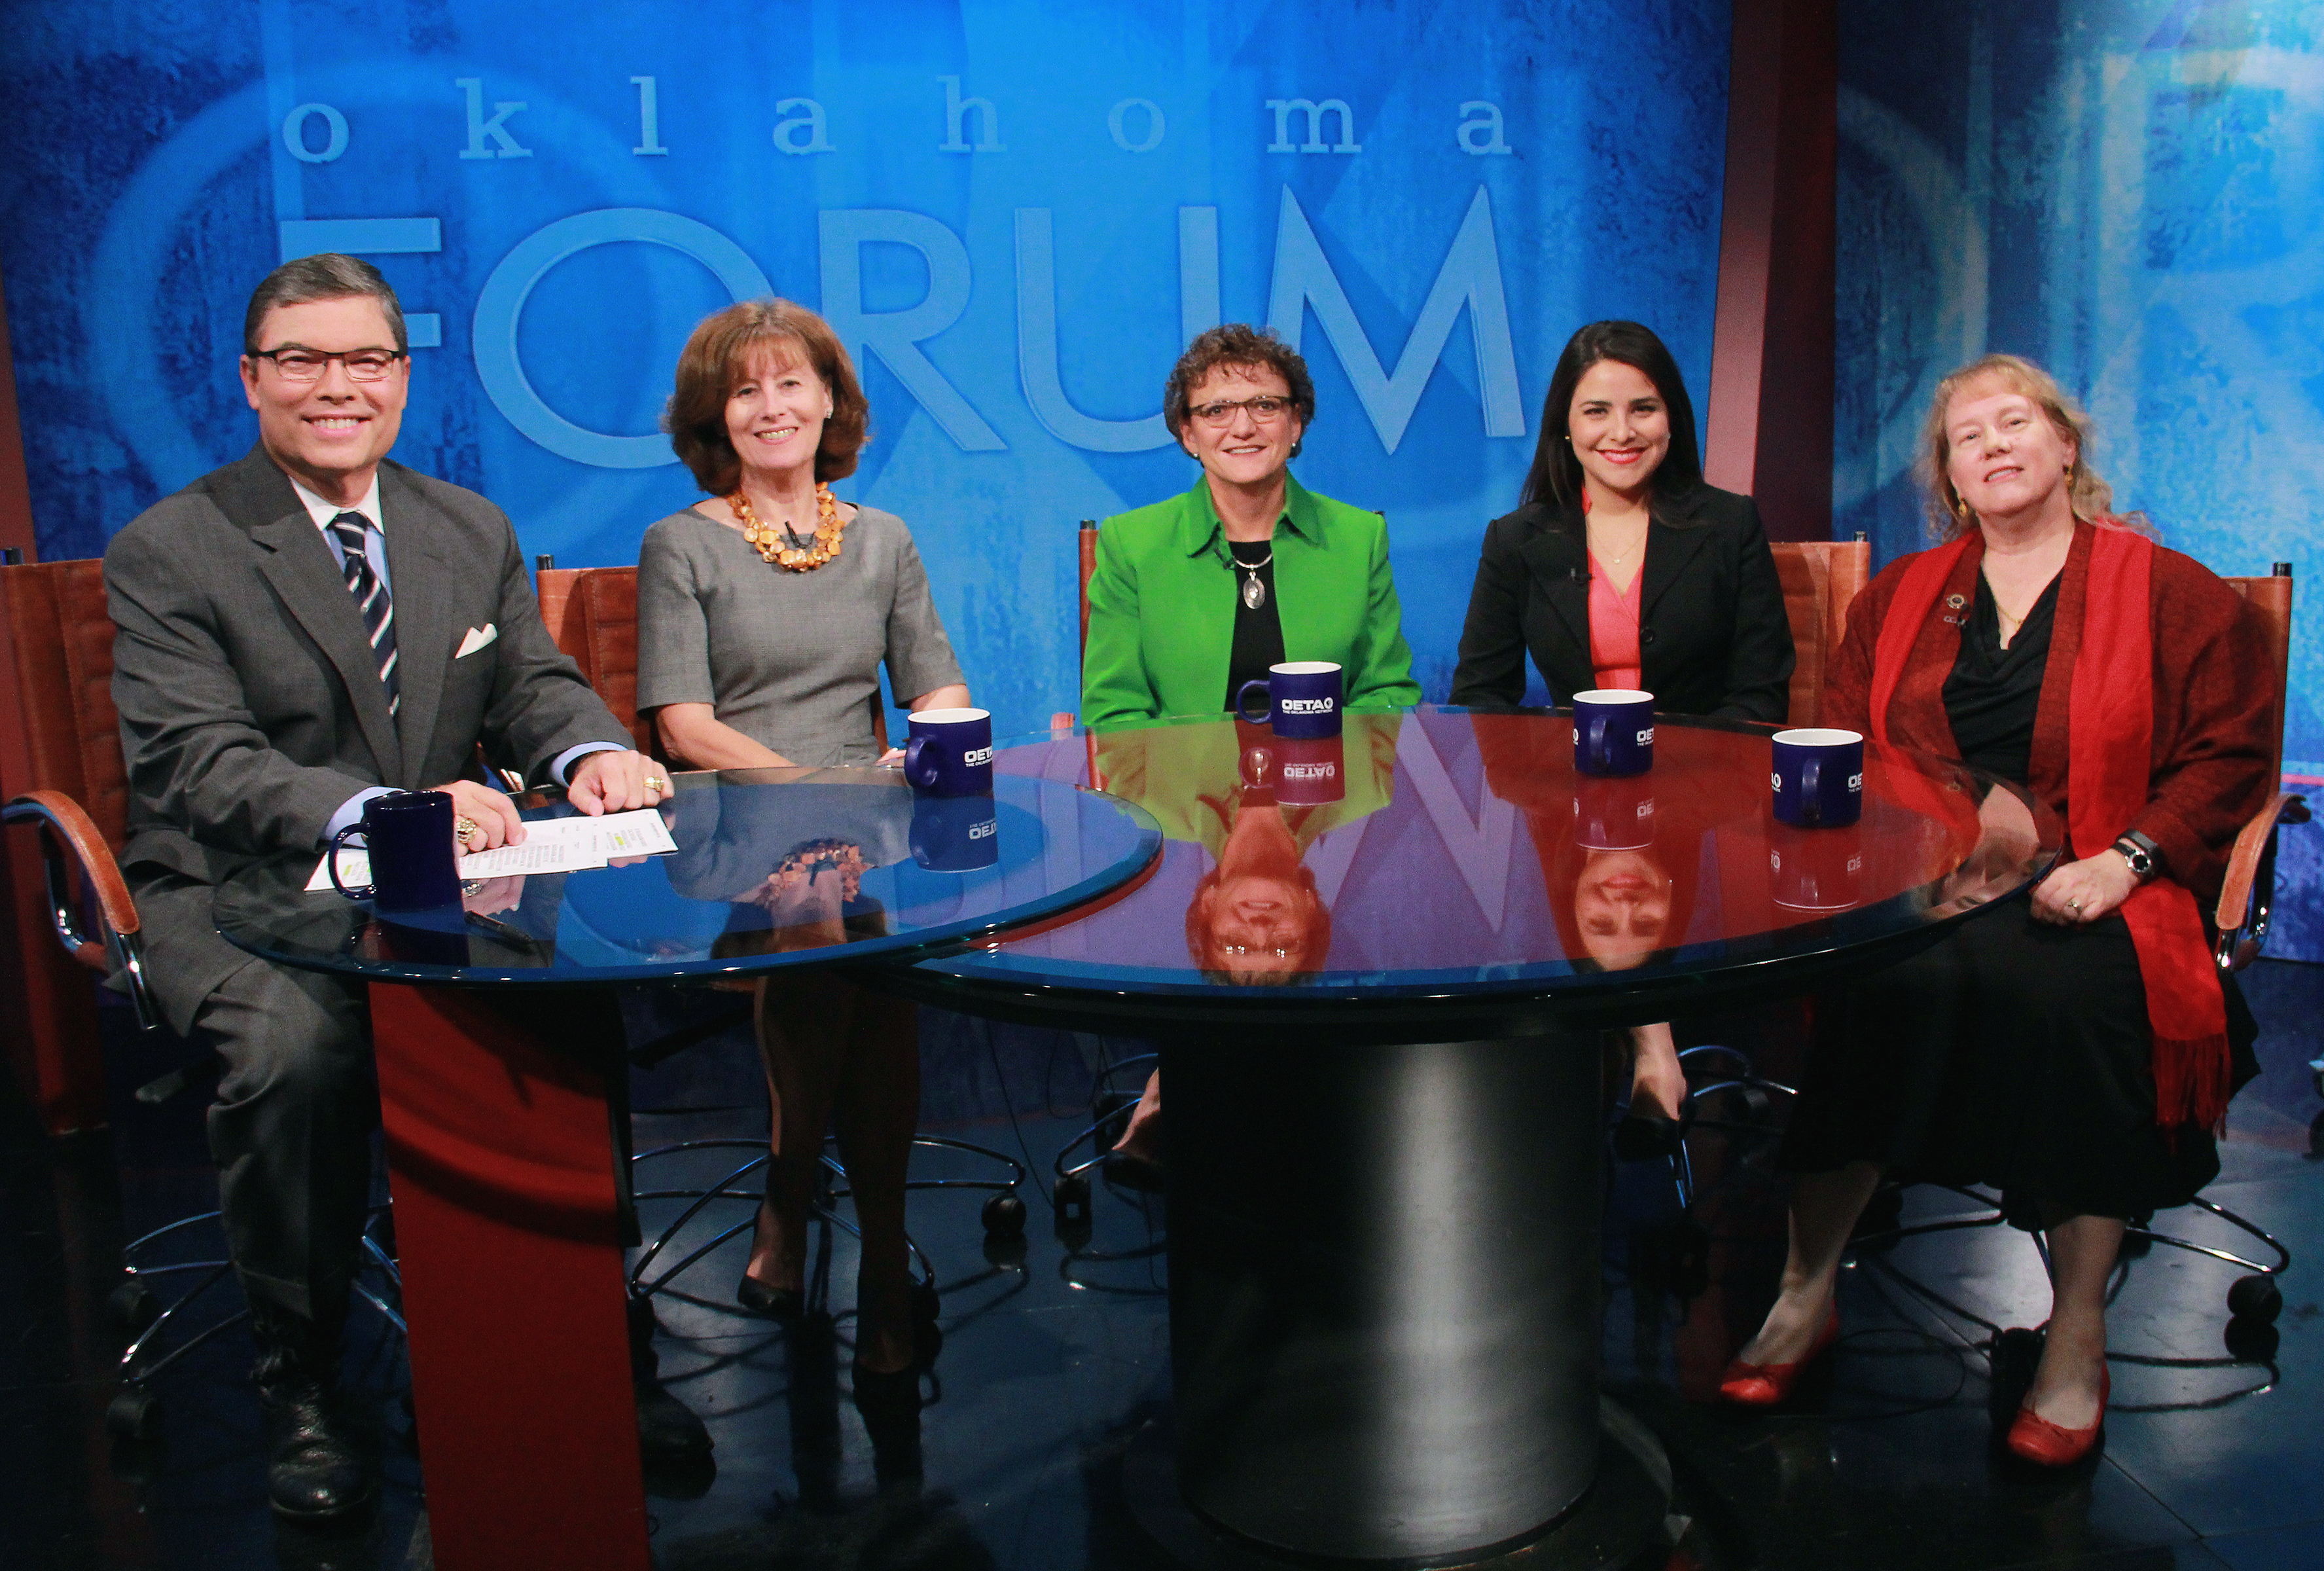 State of Women - VIDEO AVAILABLE by 3pm on 09/15/14